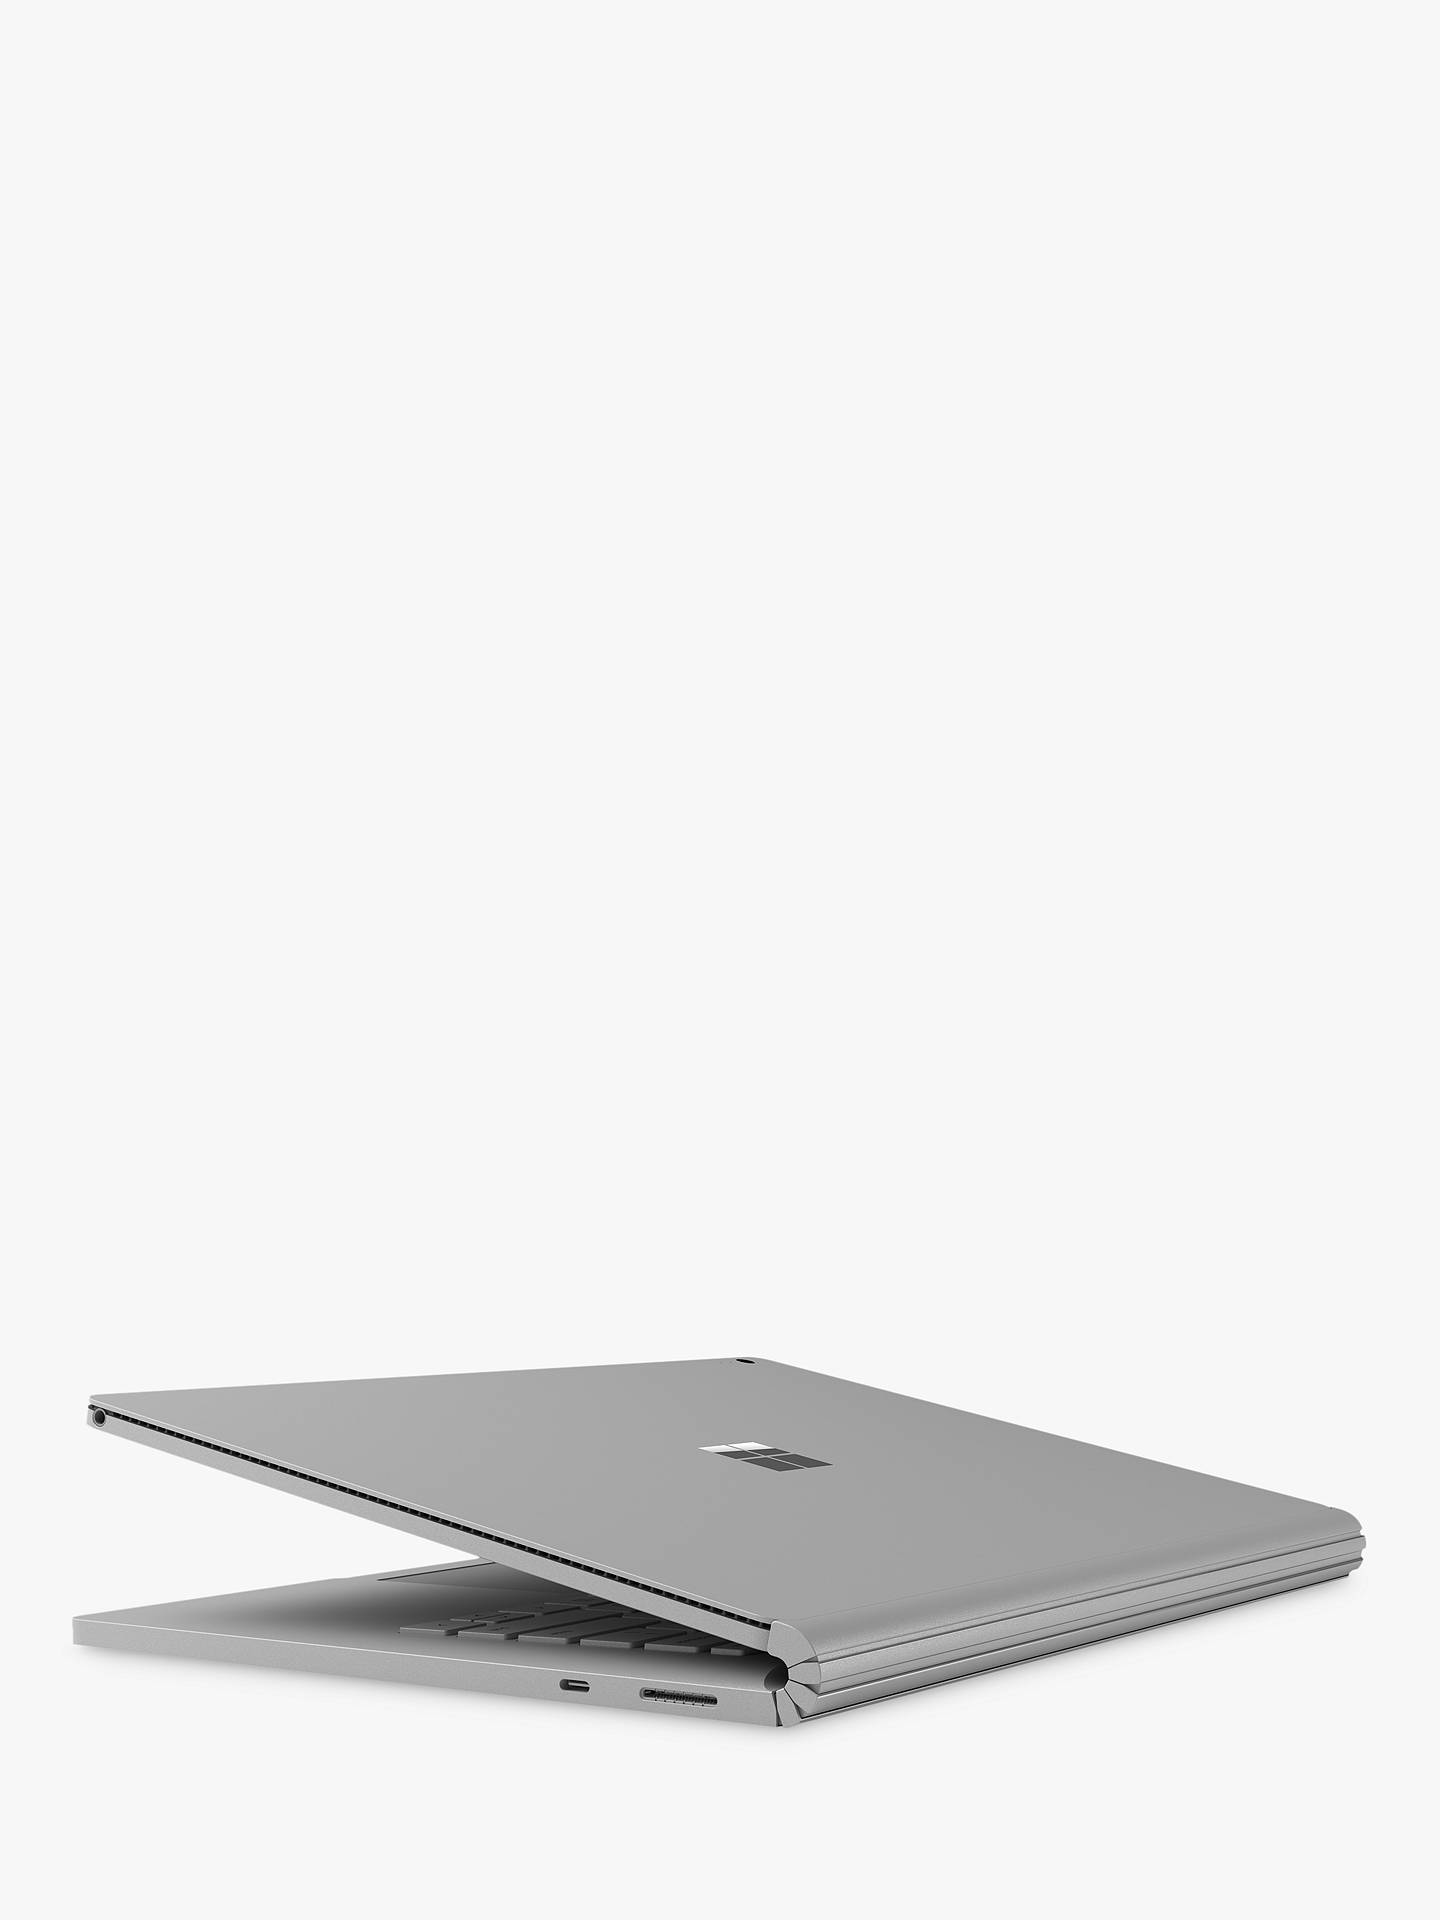 Microsoft surface book 2 intel core i7 16gb ram 512gb ssd 135 buymicrosoft surface book 2 intel core i7 16gb ram 512gb ssd 135 fandeluxe Image collections